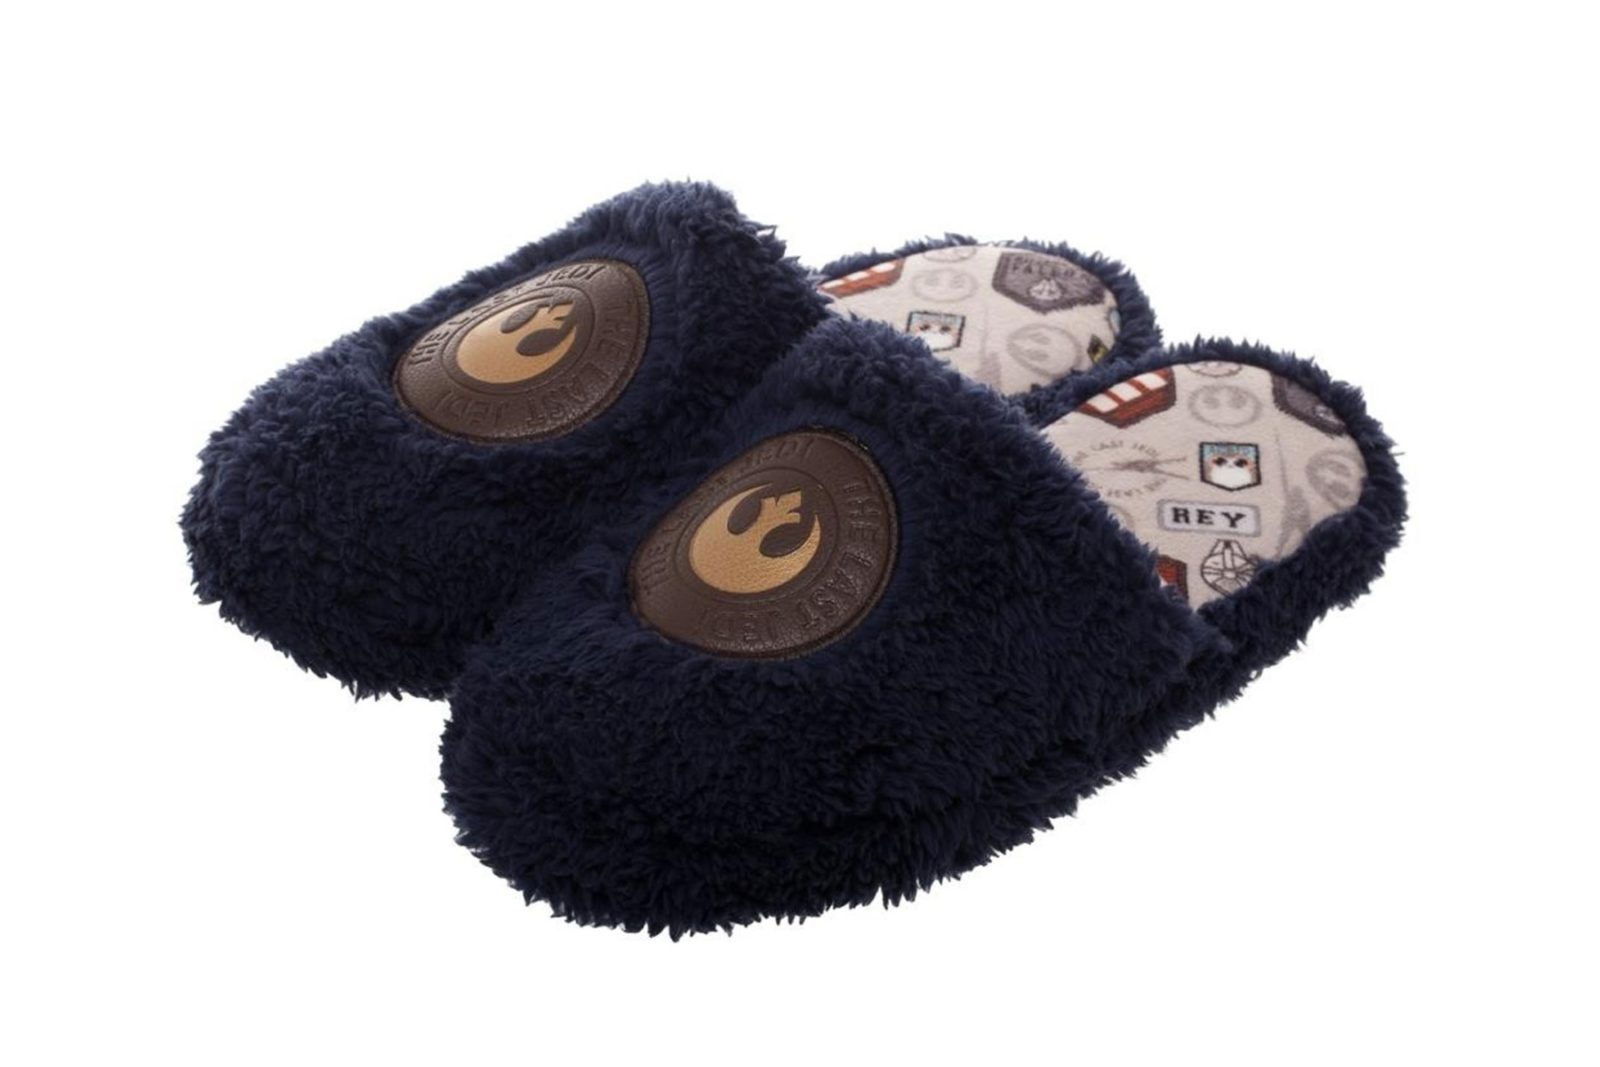 New Star Wars Rey Inspired Slippers at Fun